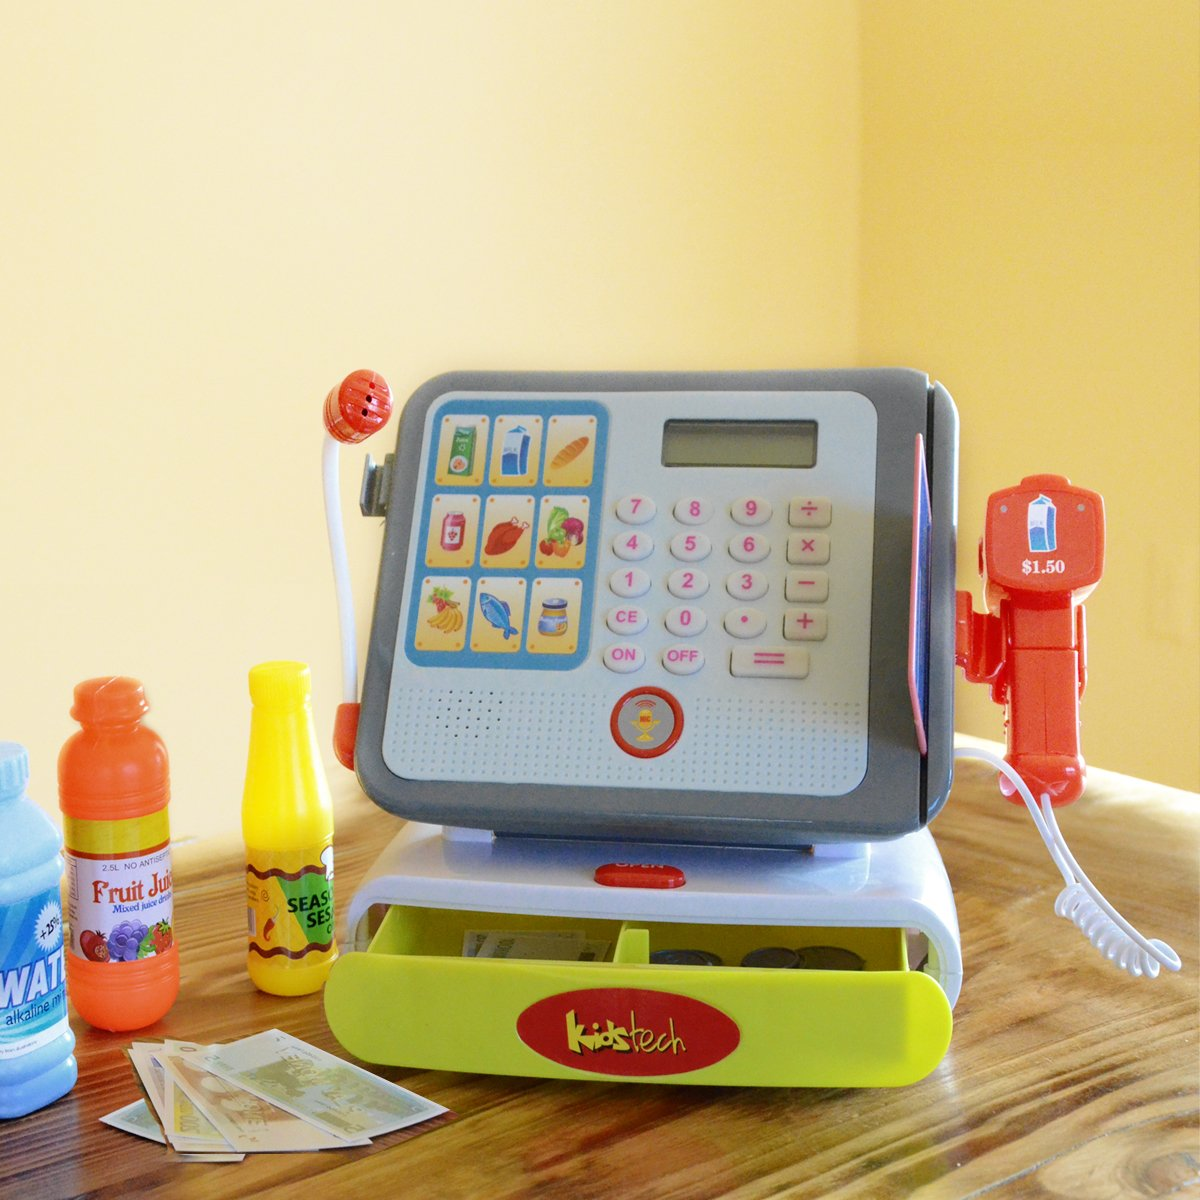 Toy Cash Register With Scanner : Durable modeling kids electronic till cash register toy